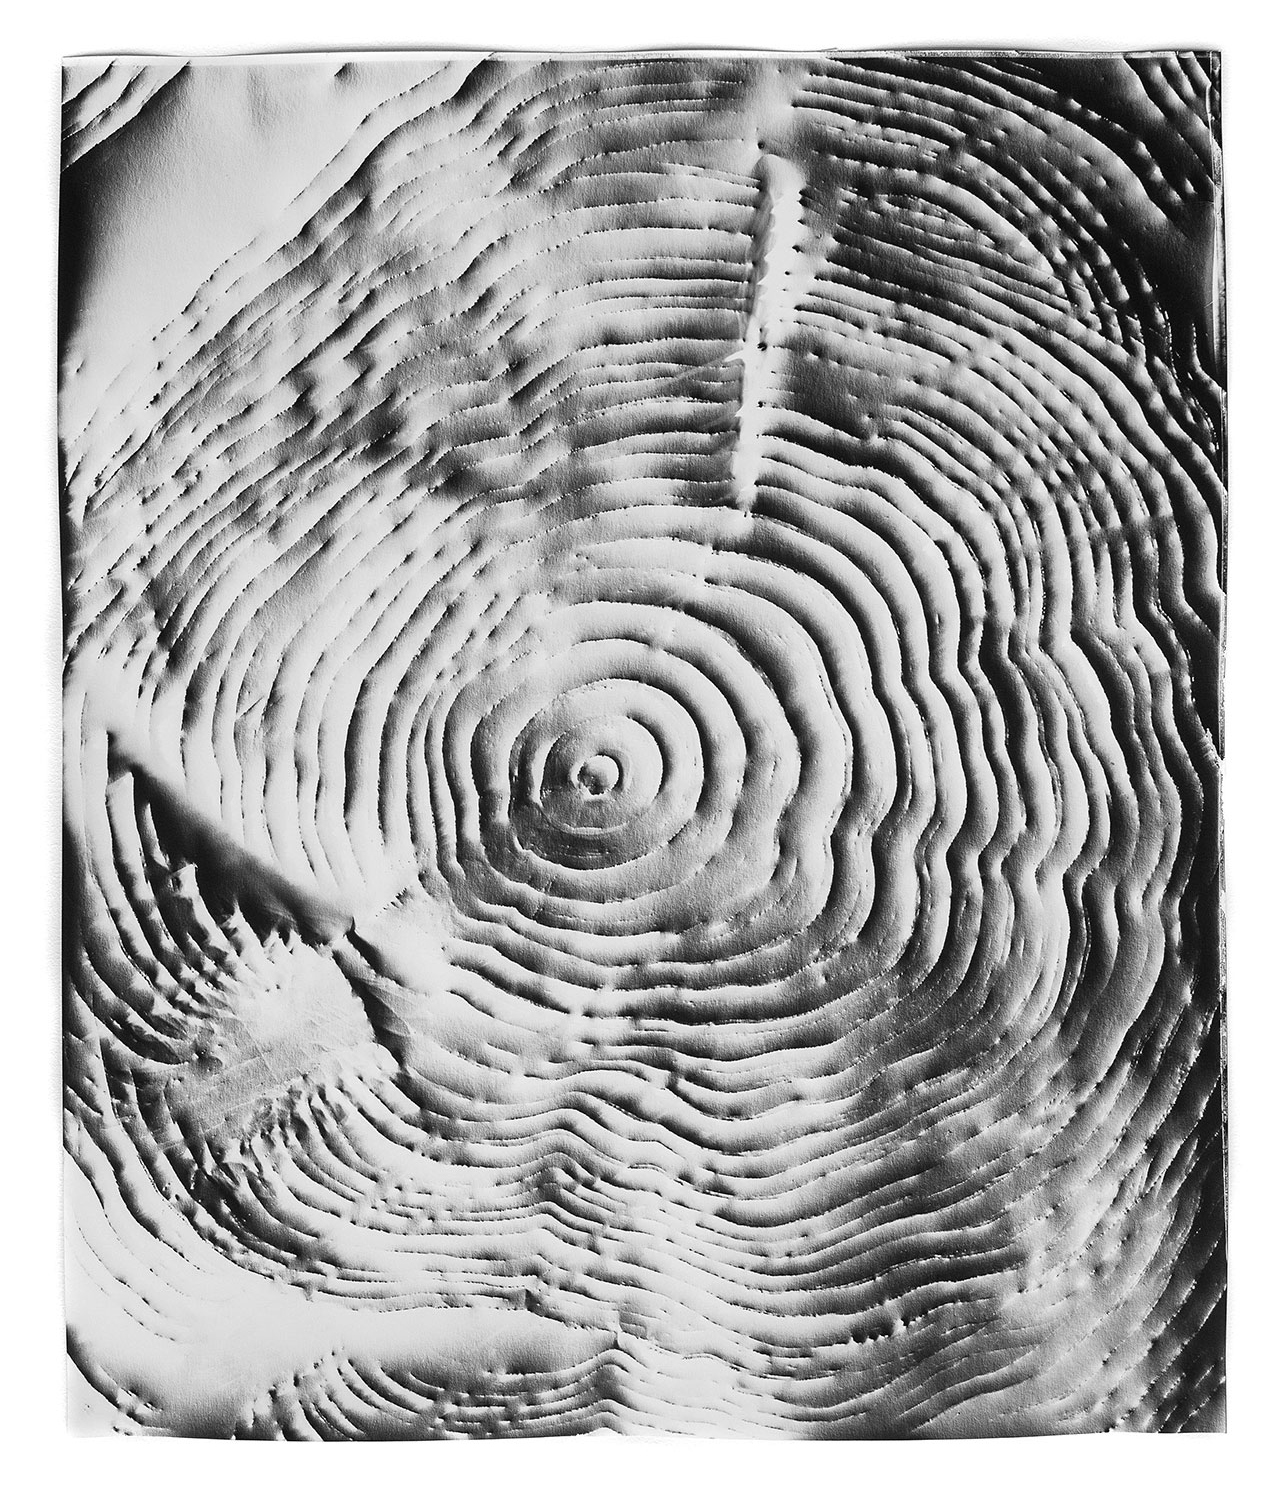 KLEA McKENNA  Automatic Earth 55,  2017 Photographic rubbing. Unique gelatin silver photogram. 24 x 20 inches